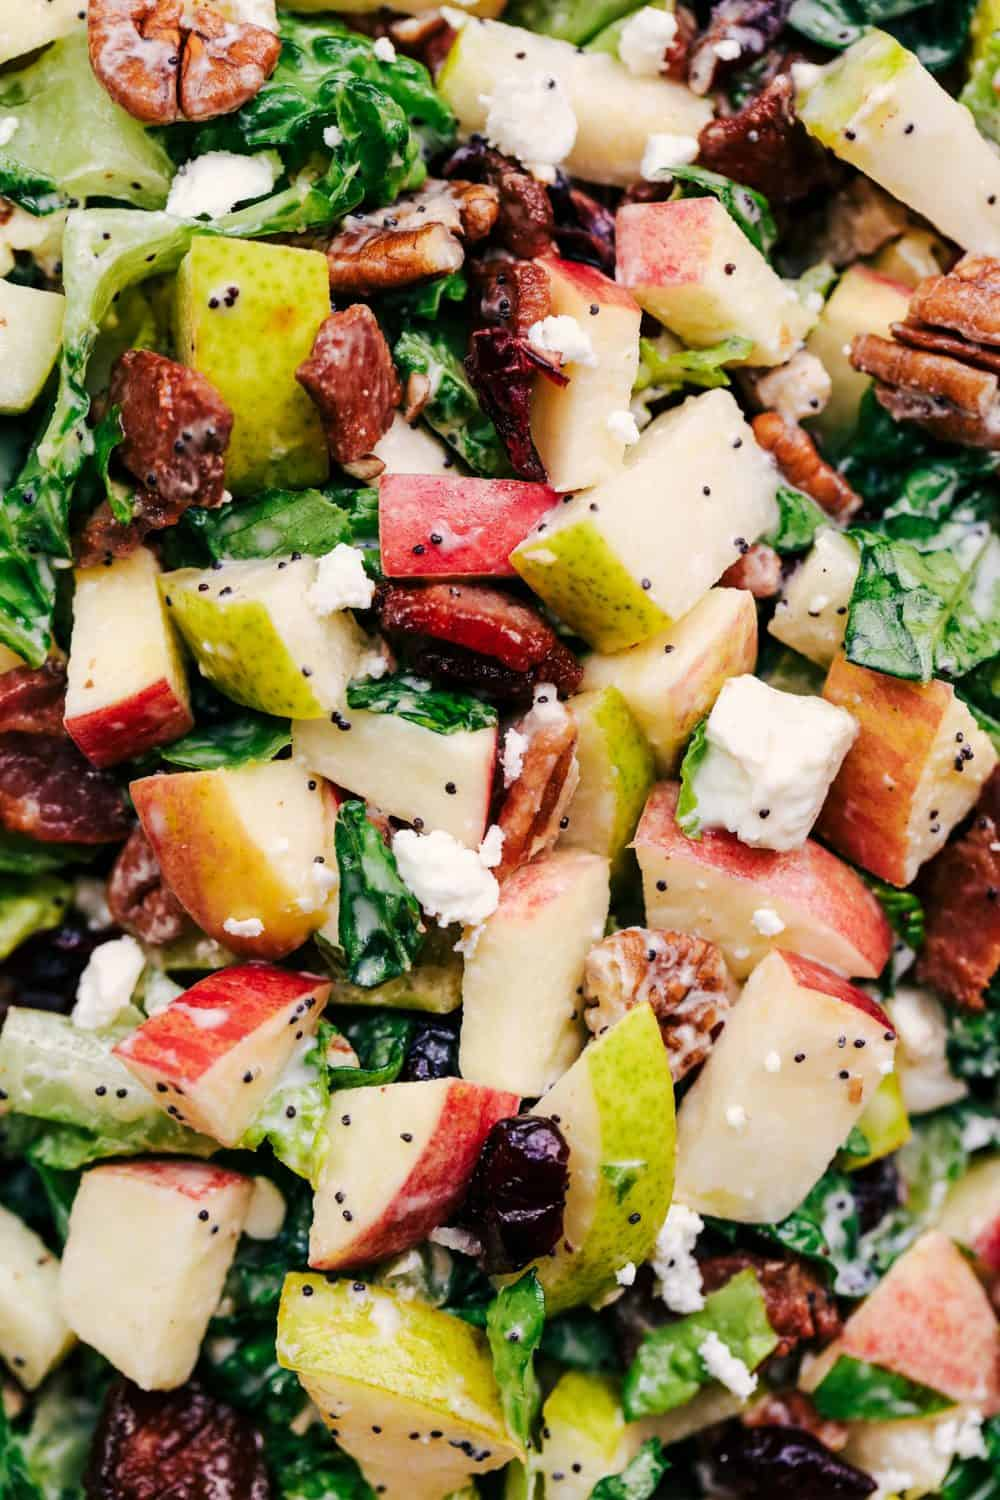 Autumn Chopped Salad with Creamy Poppyseed Dressing close up